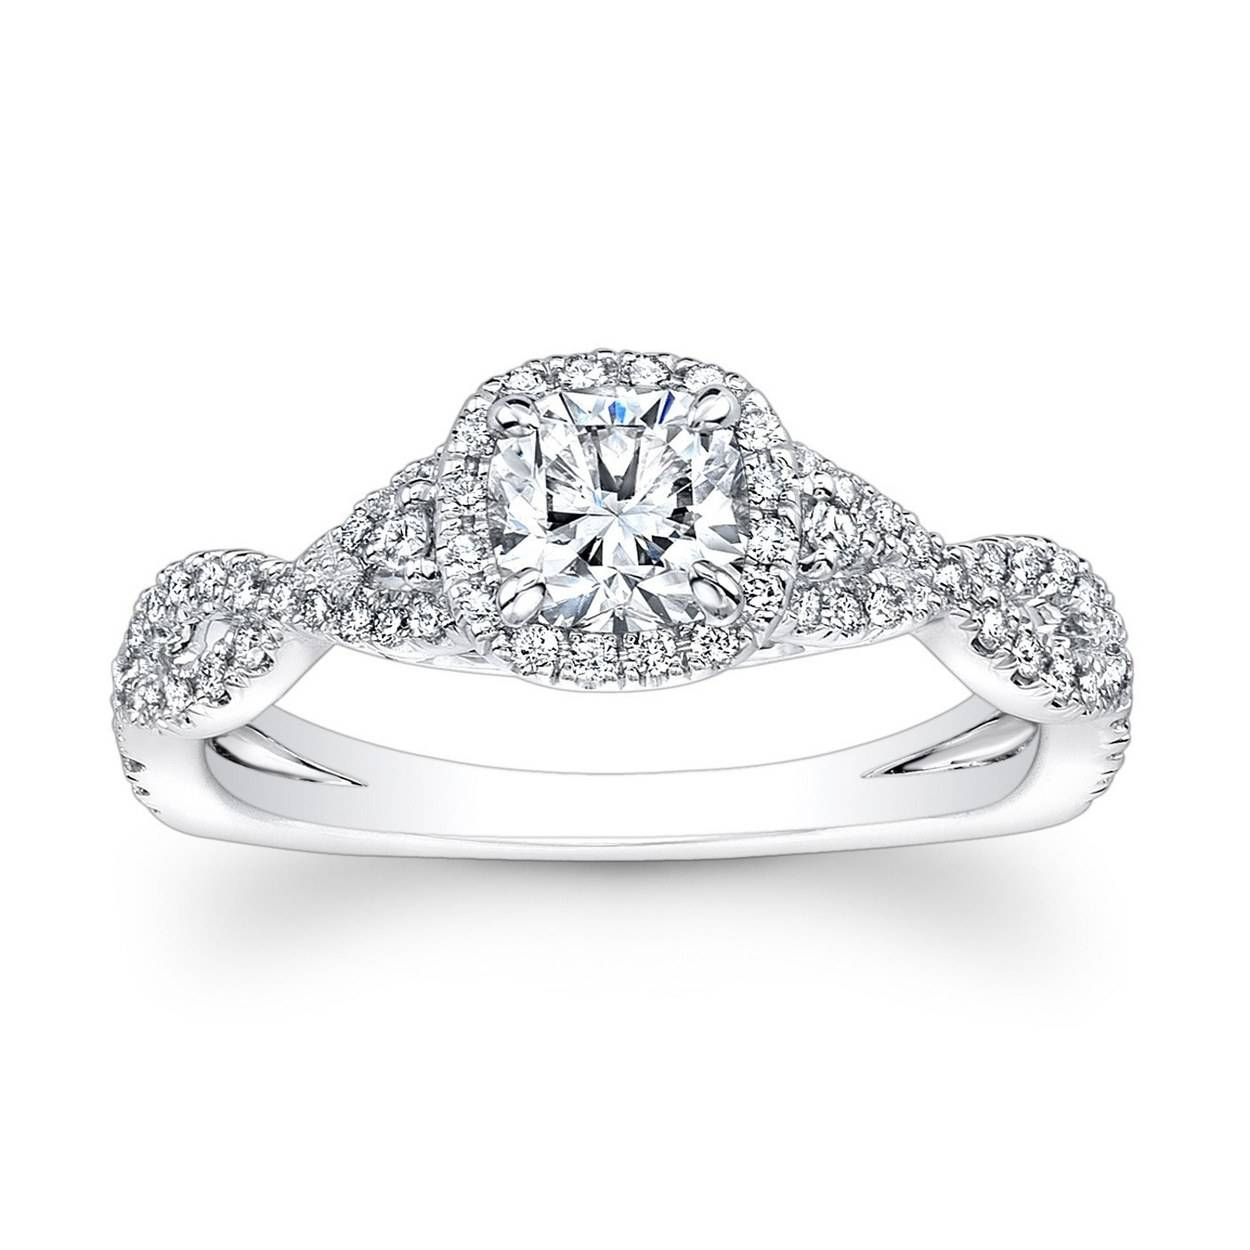 62 Diamond Engagement Rings Under $5,000 | Glamour With Most Popular Square Cut Diamond Wedding Bands (View 14 of 15)